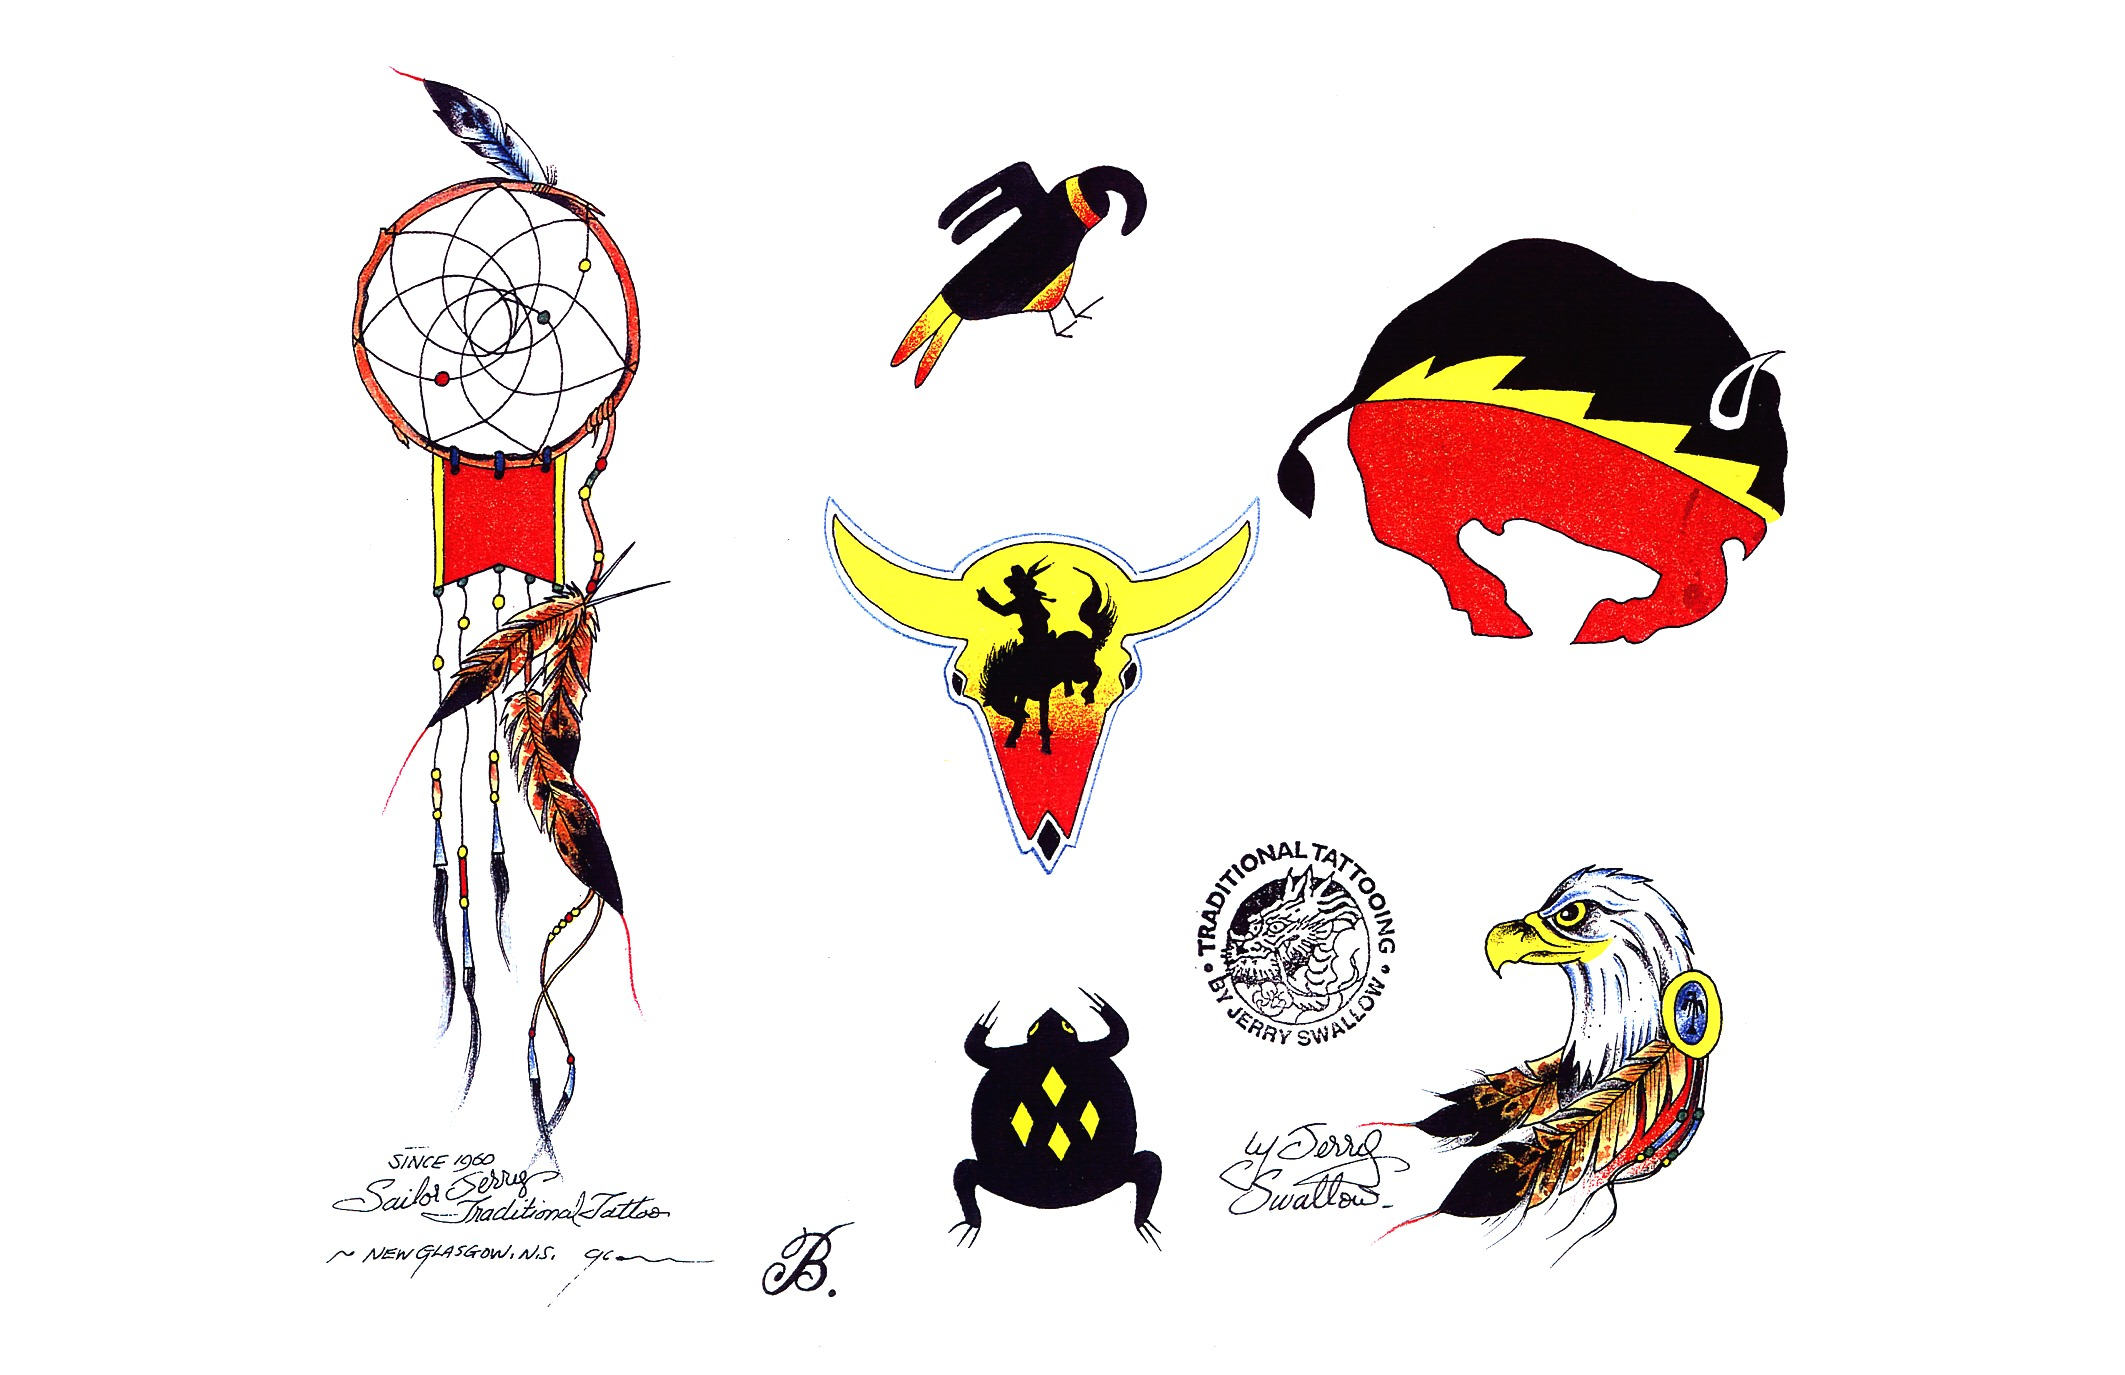 Tattoo designs by Sailor Jerry Swallow.